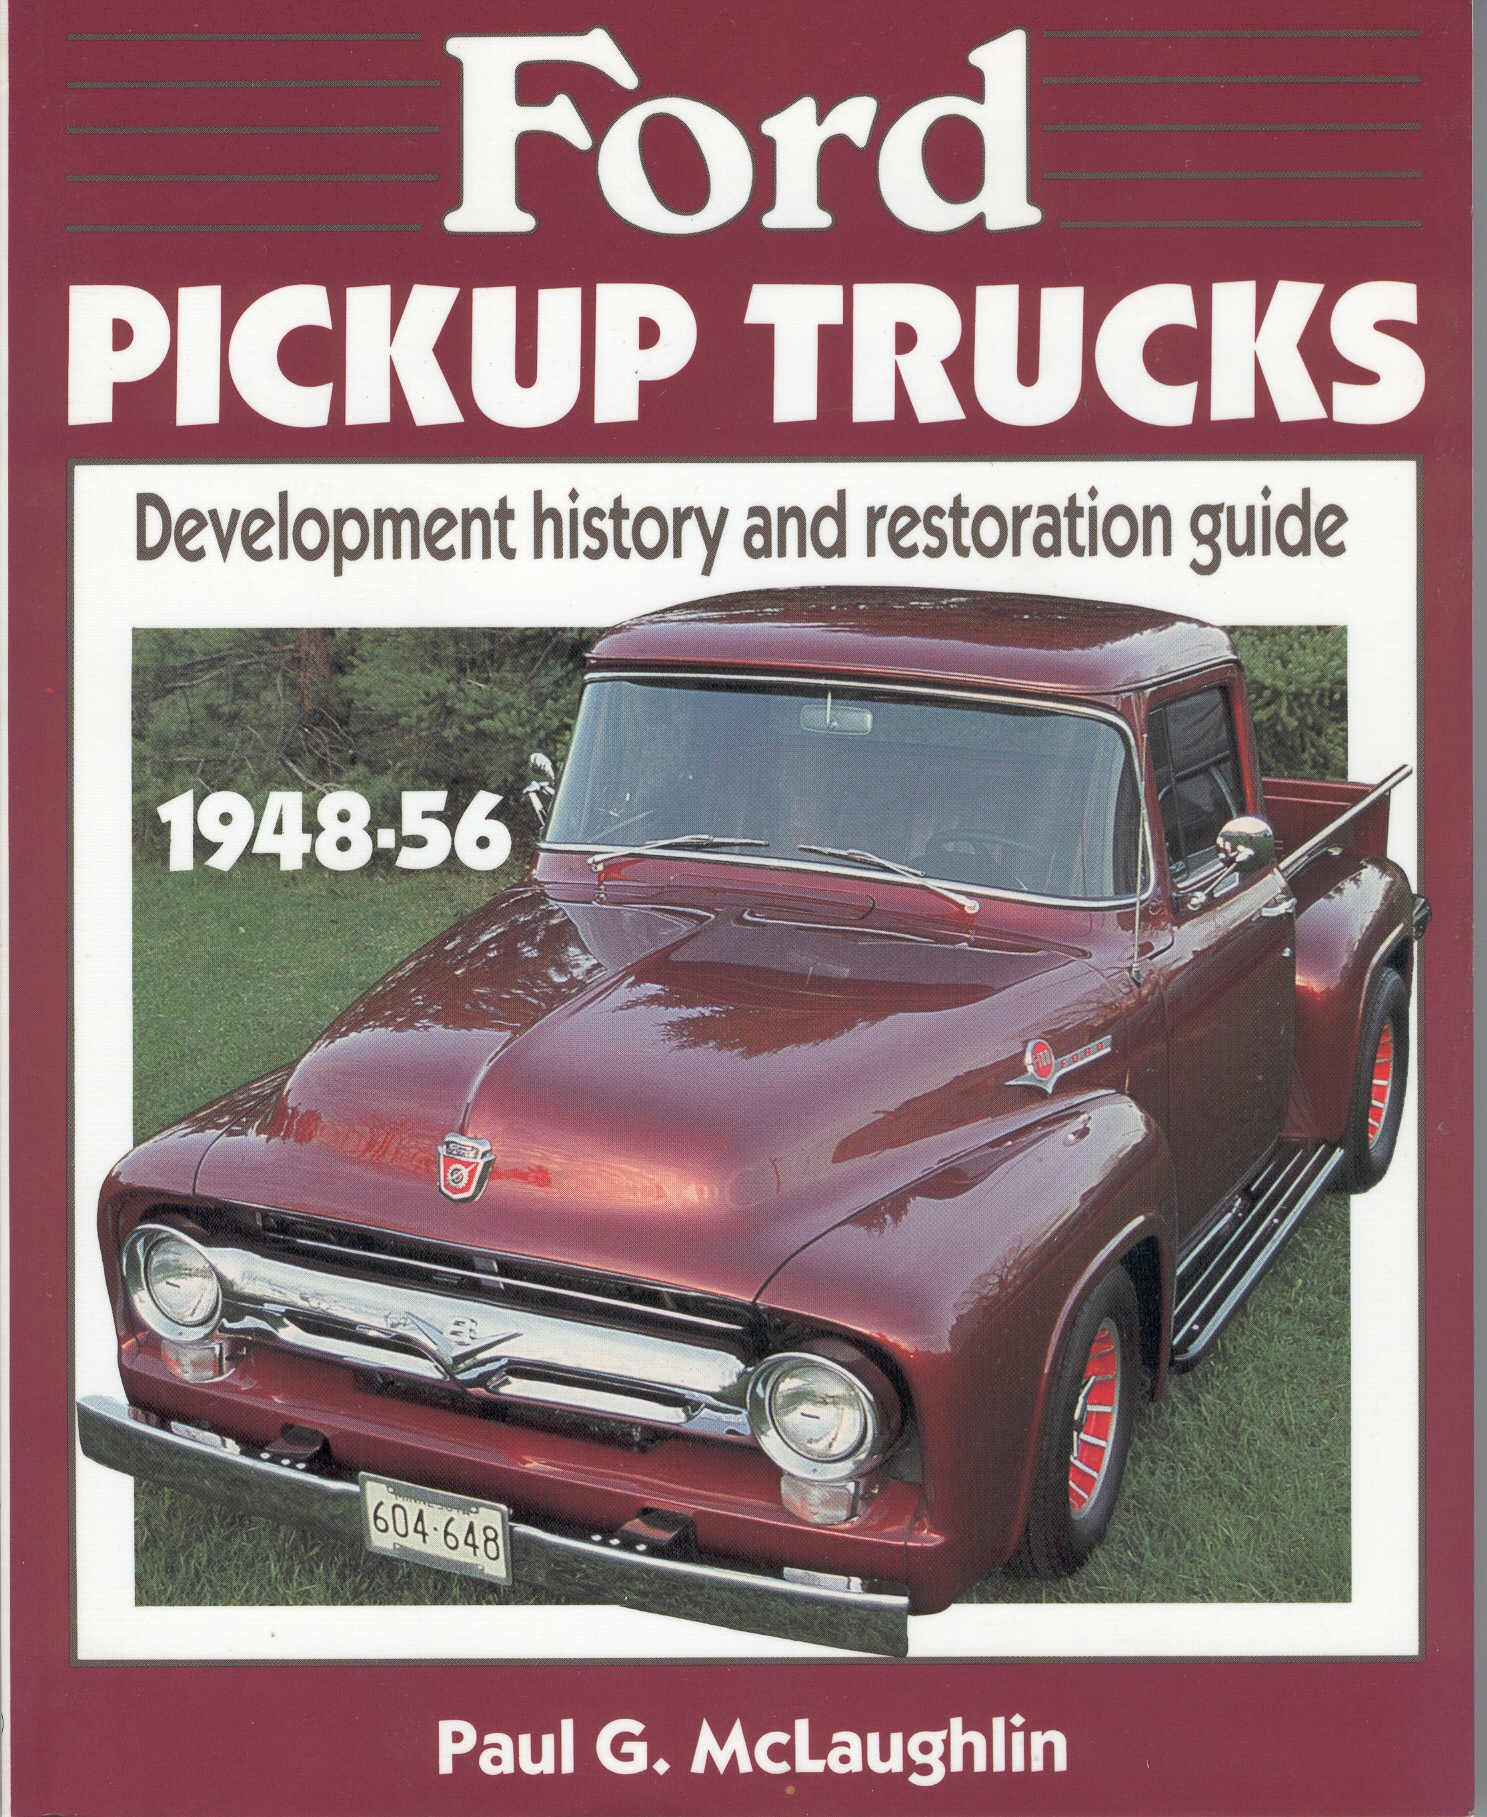 1955 Ford F100 History Pickup Trucks Development And Restoration Guide 1948 56 Paul G Mclaughlin 9780879382131 Books